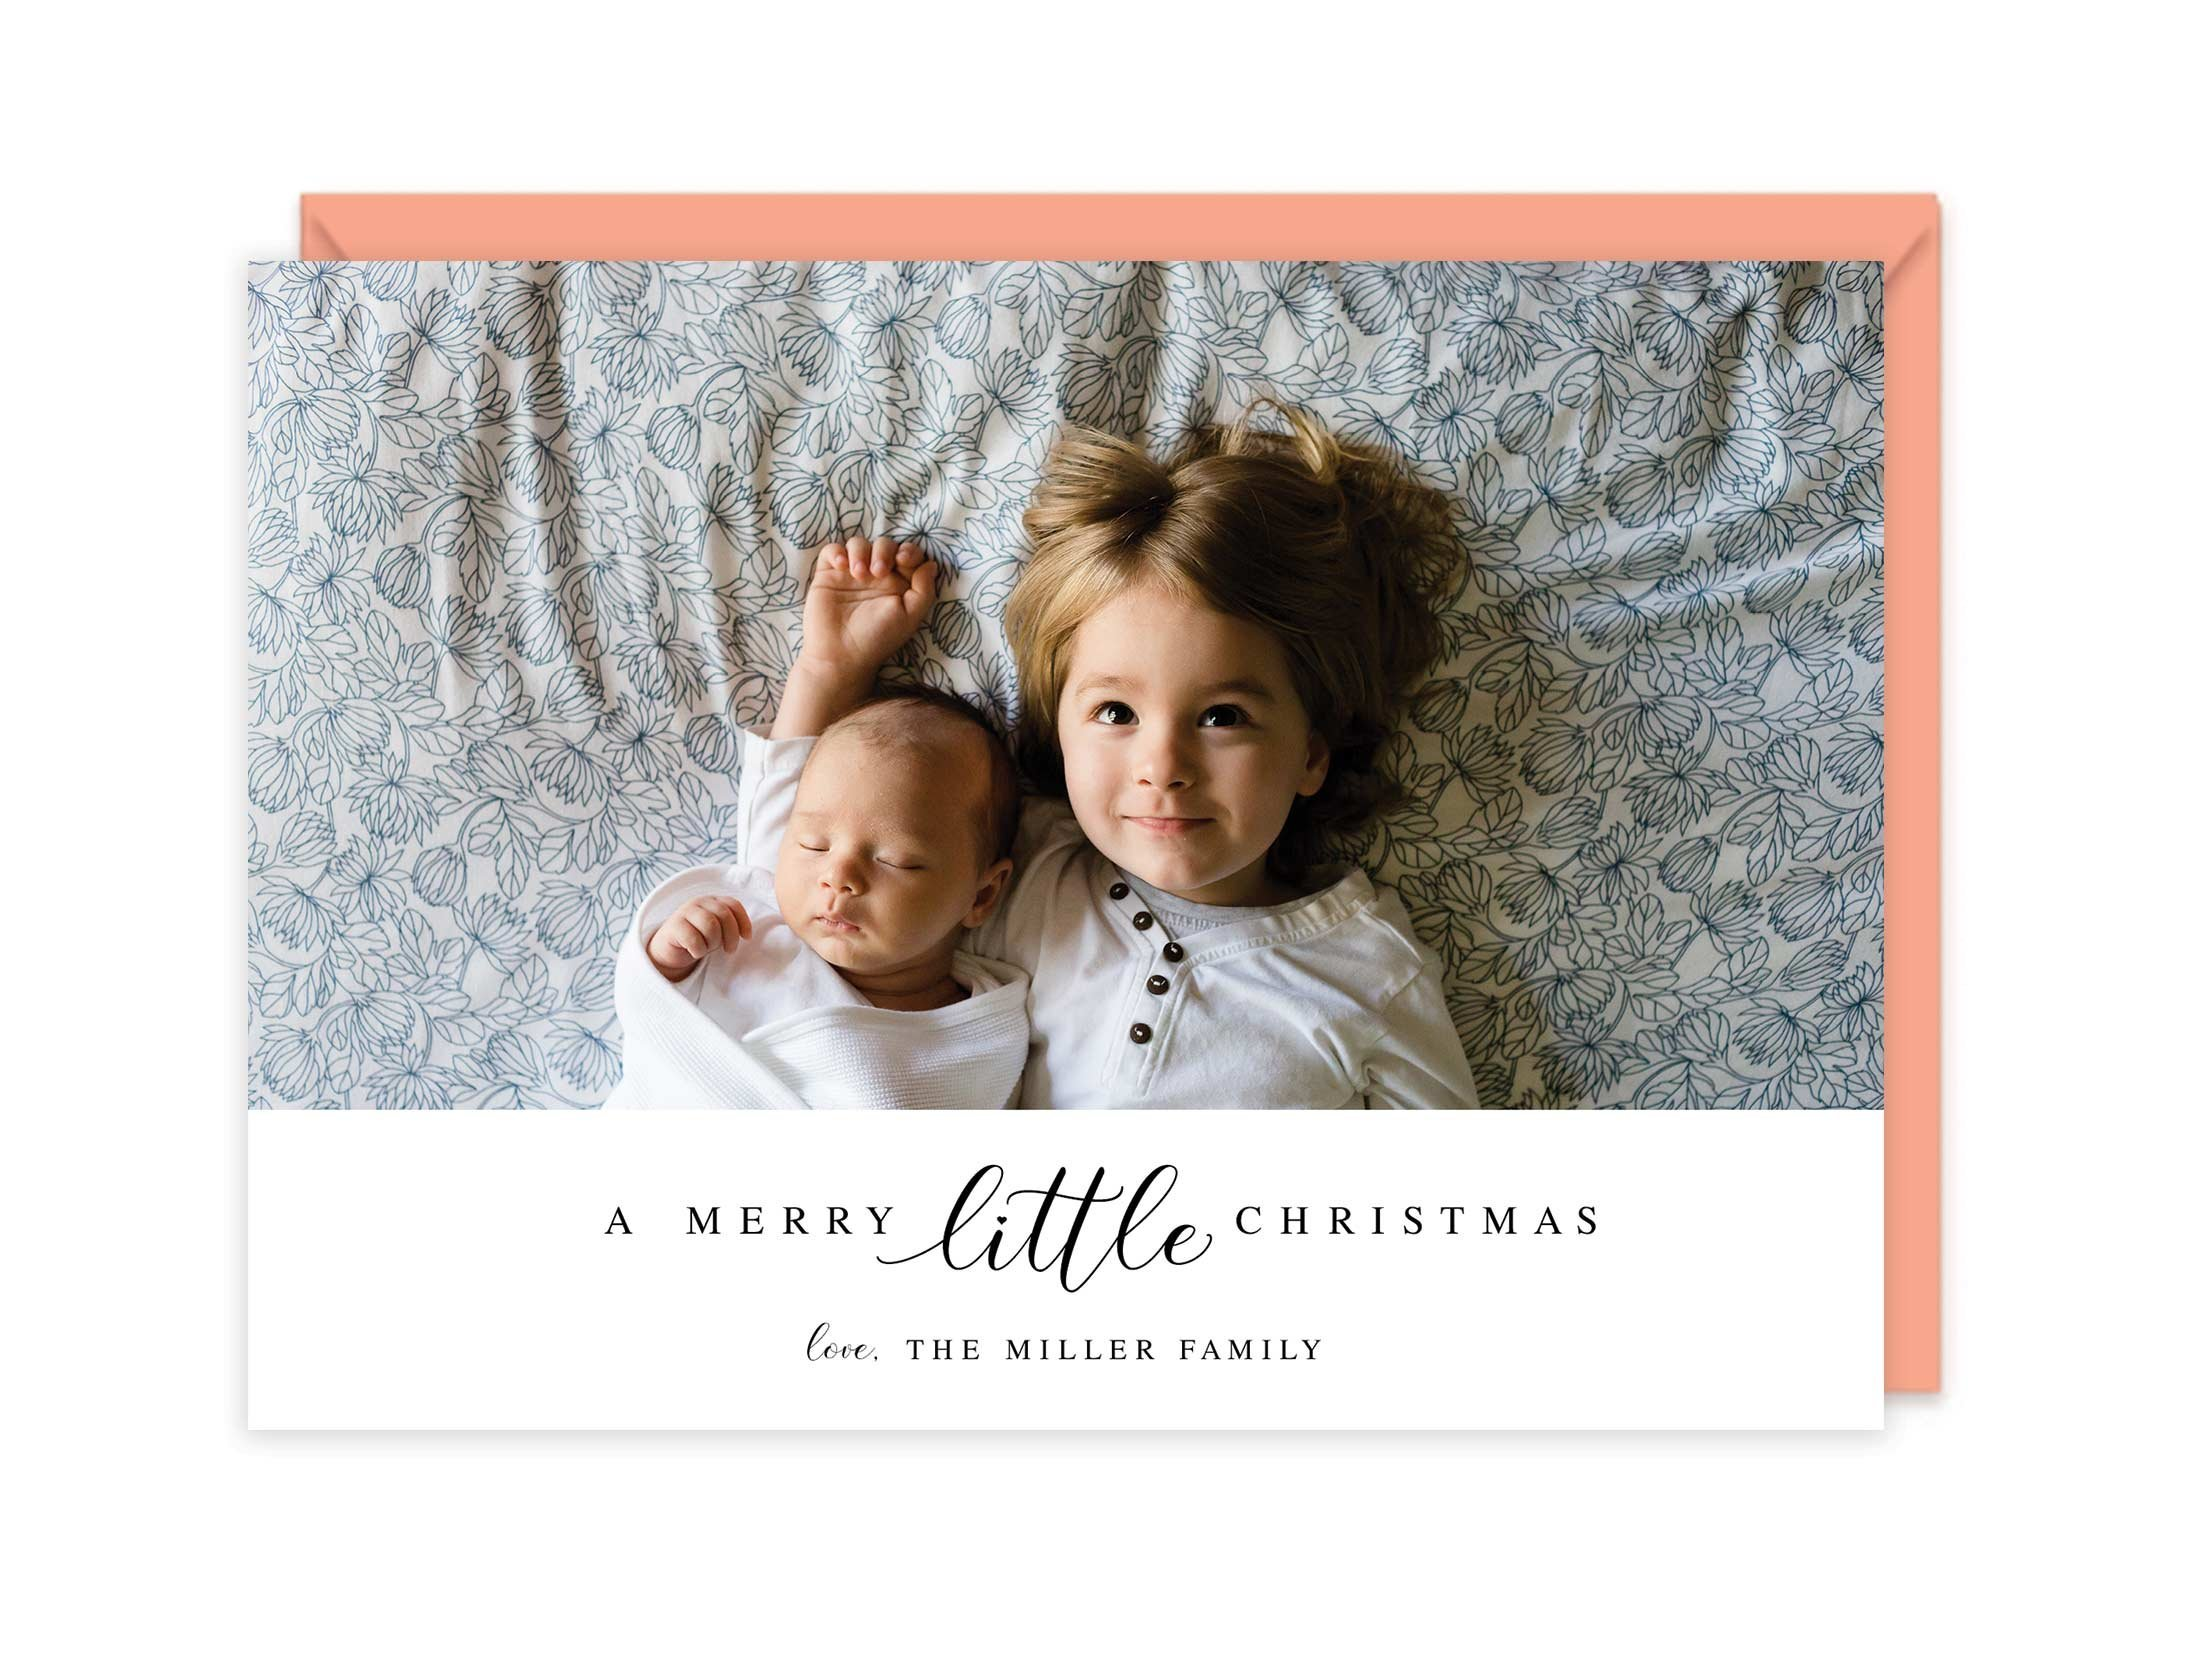 Personalized Photo Letterpress Christmas Cards - A Merry Little Christmas